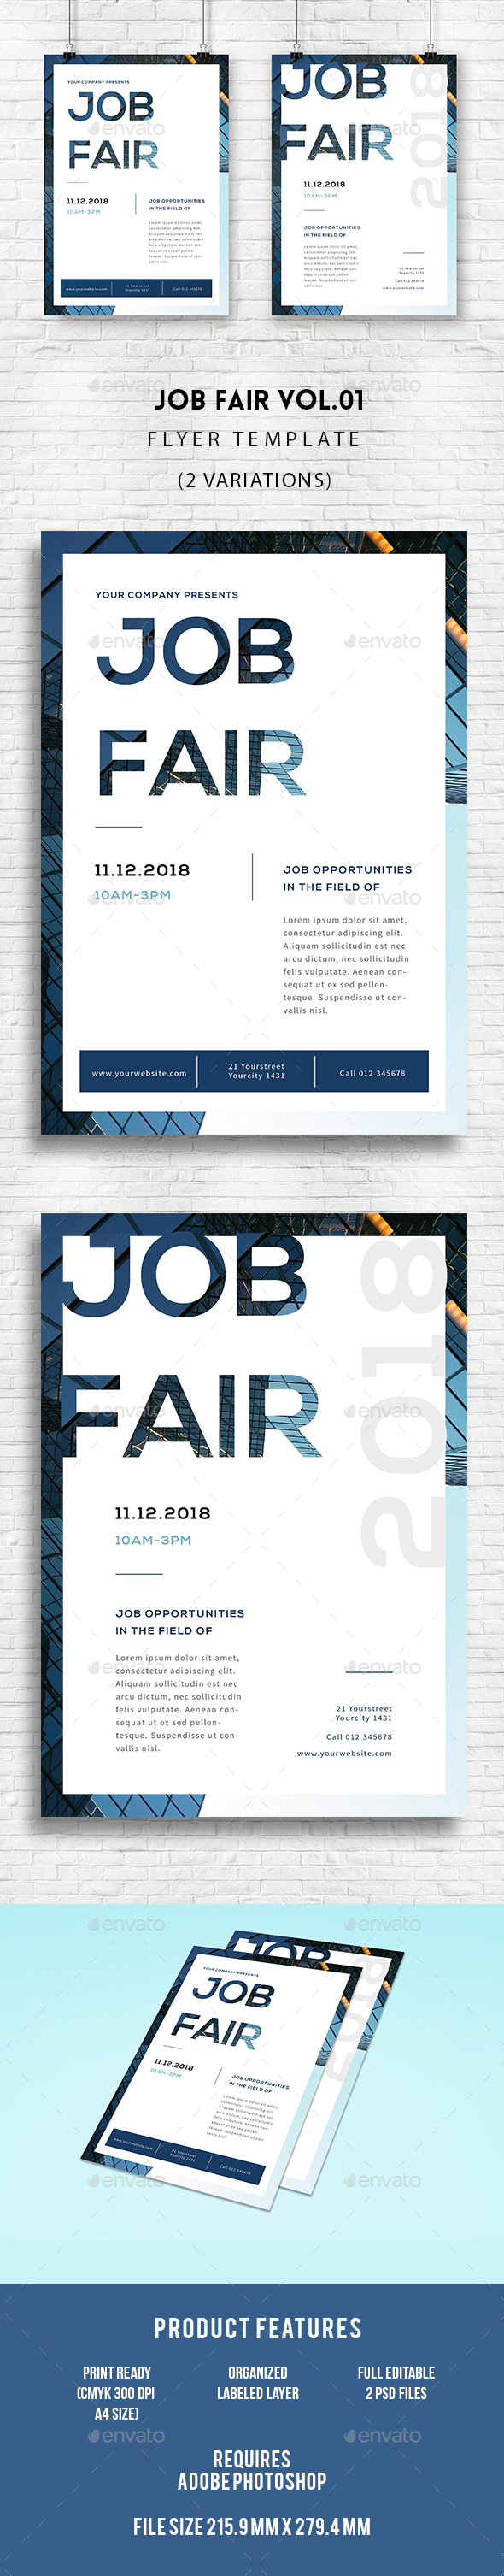 Job fair flyer by infinite78910 graphicriver for Job fair brochure template